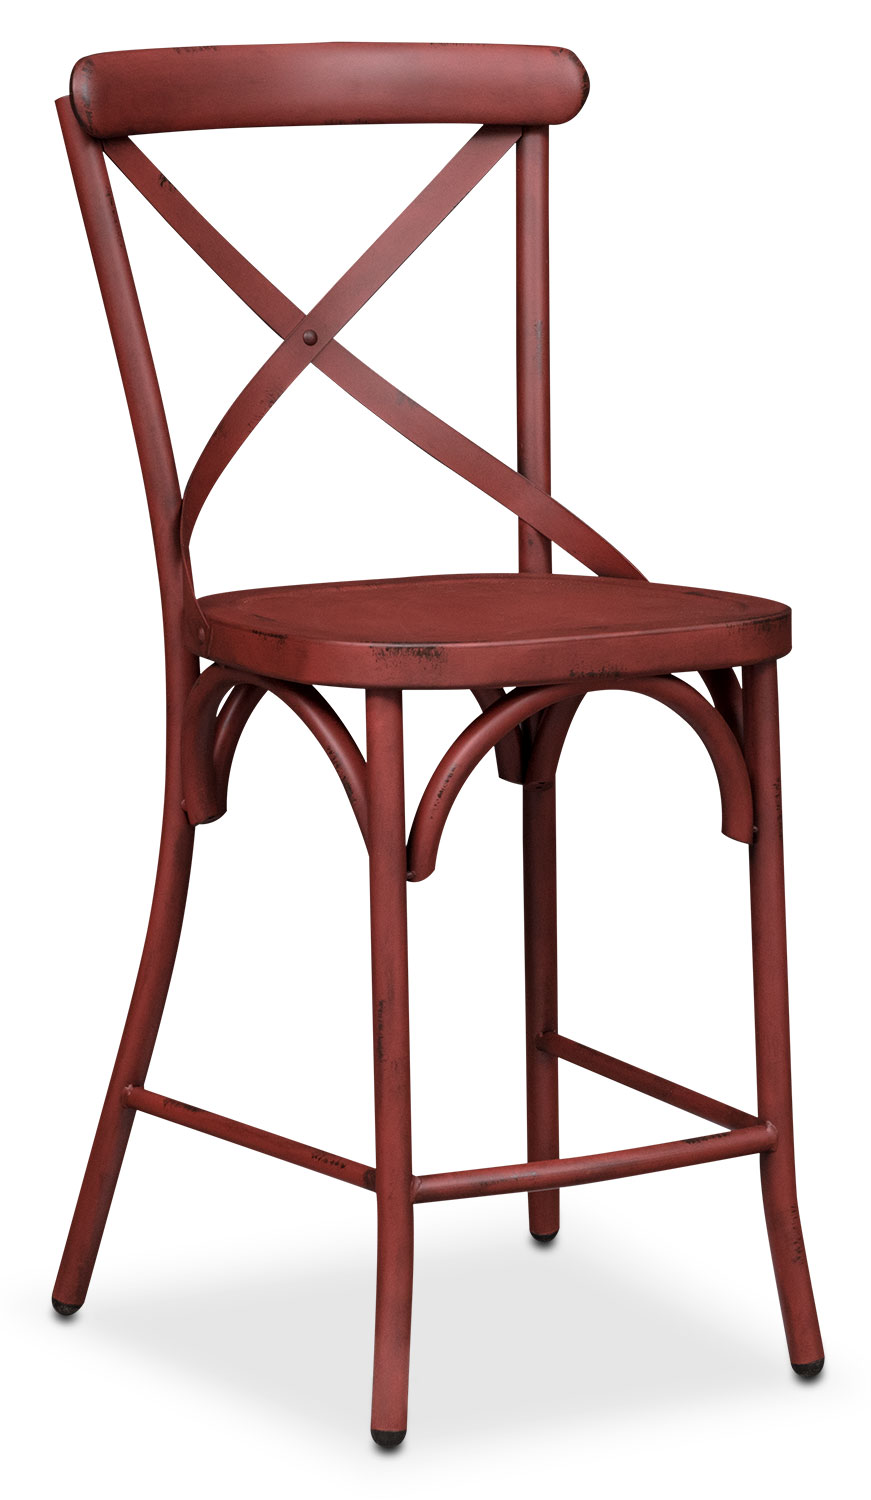 Saxon X-Back Counter-Height Stool - Red